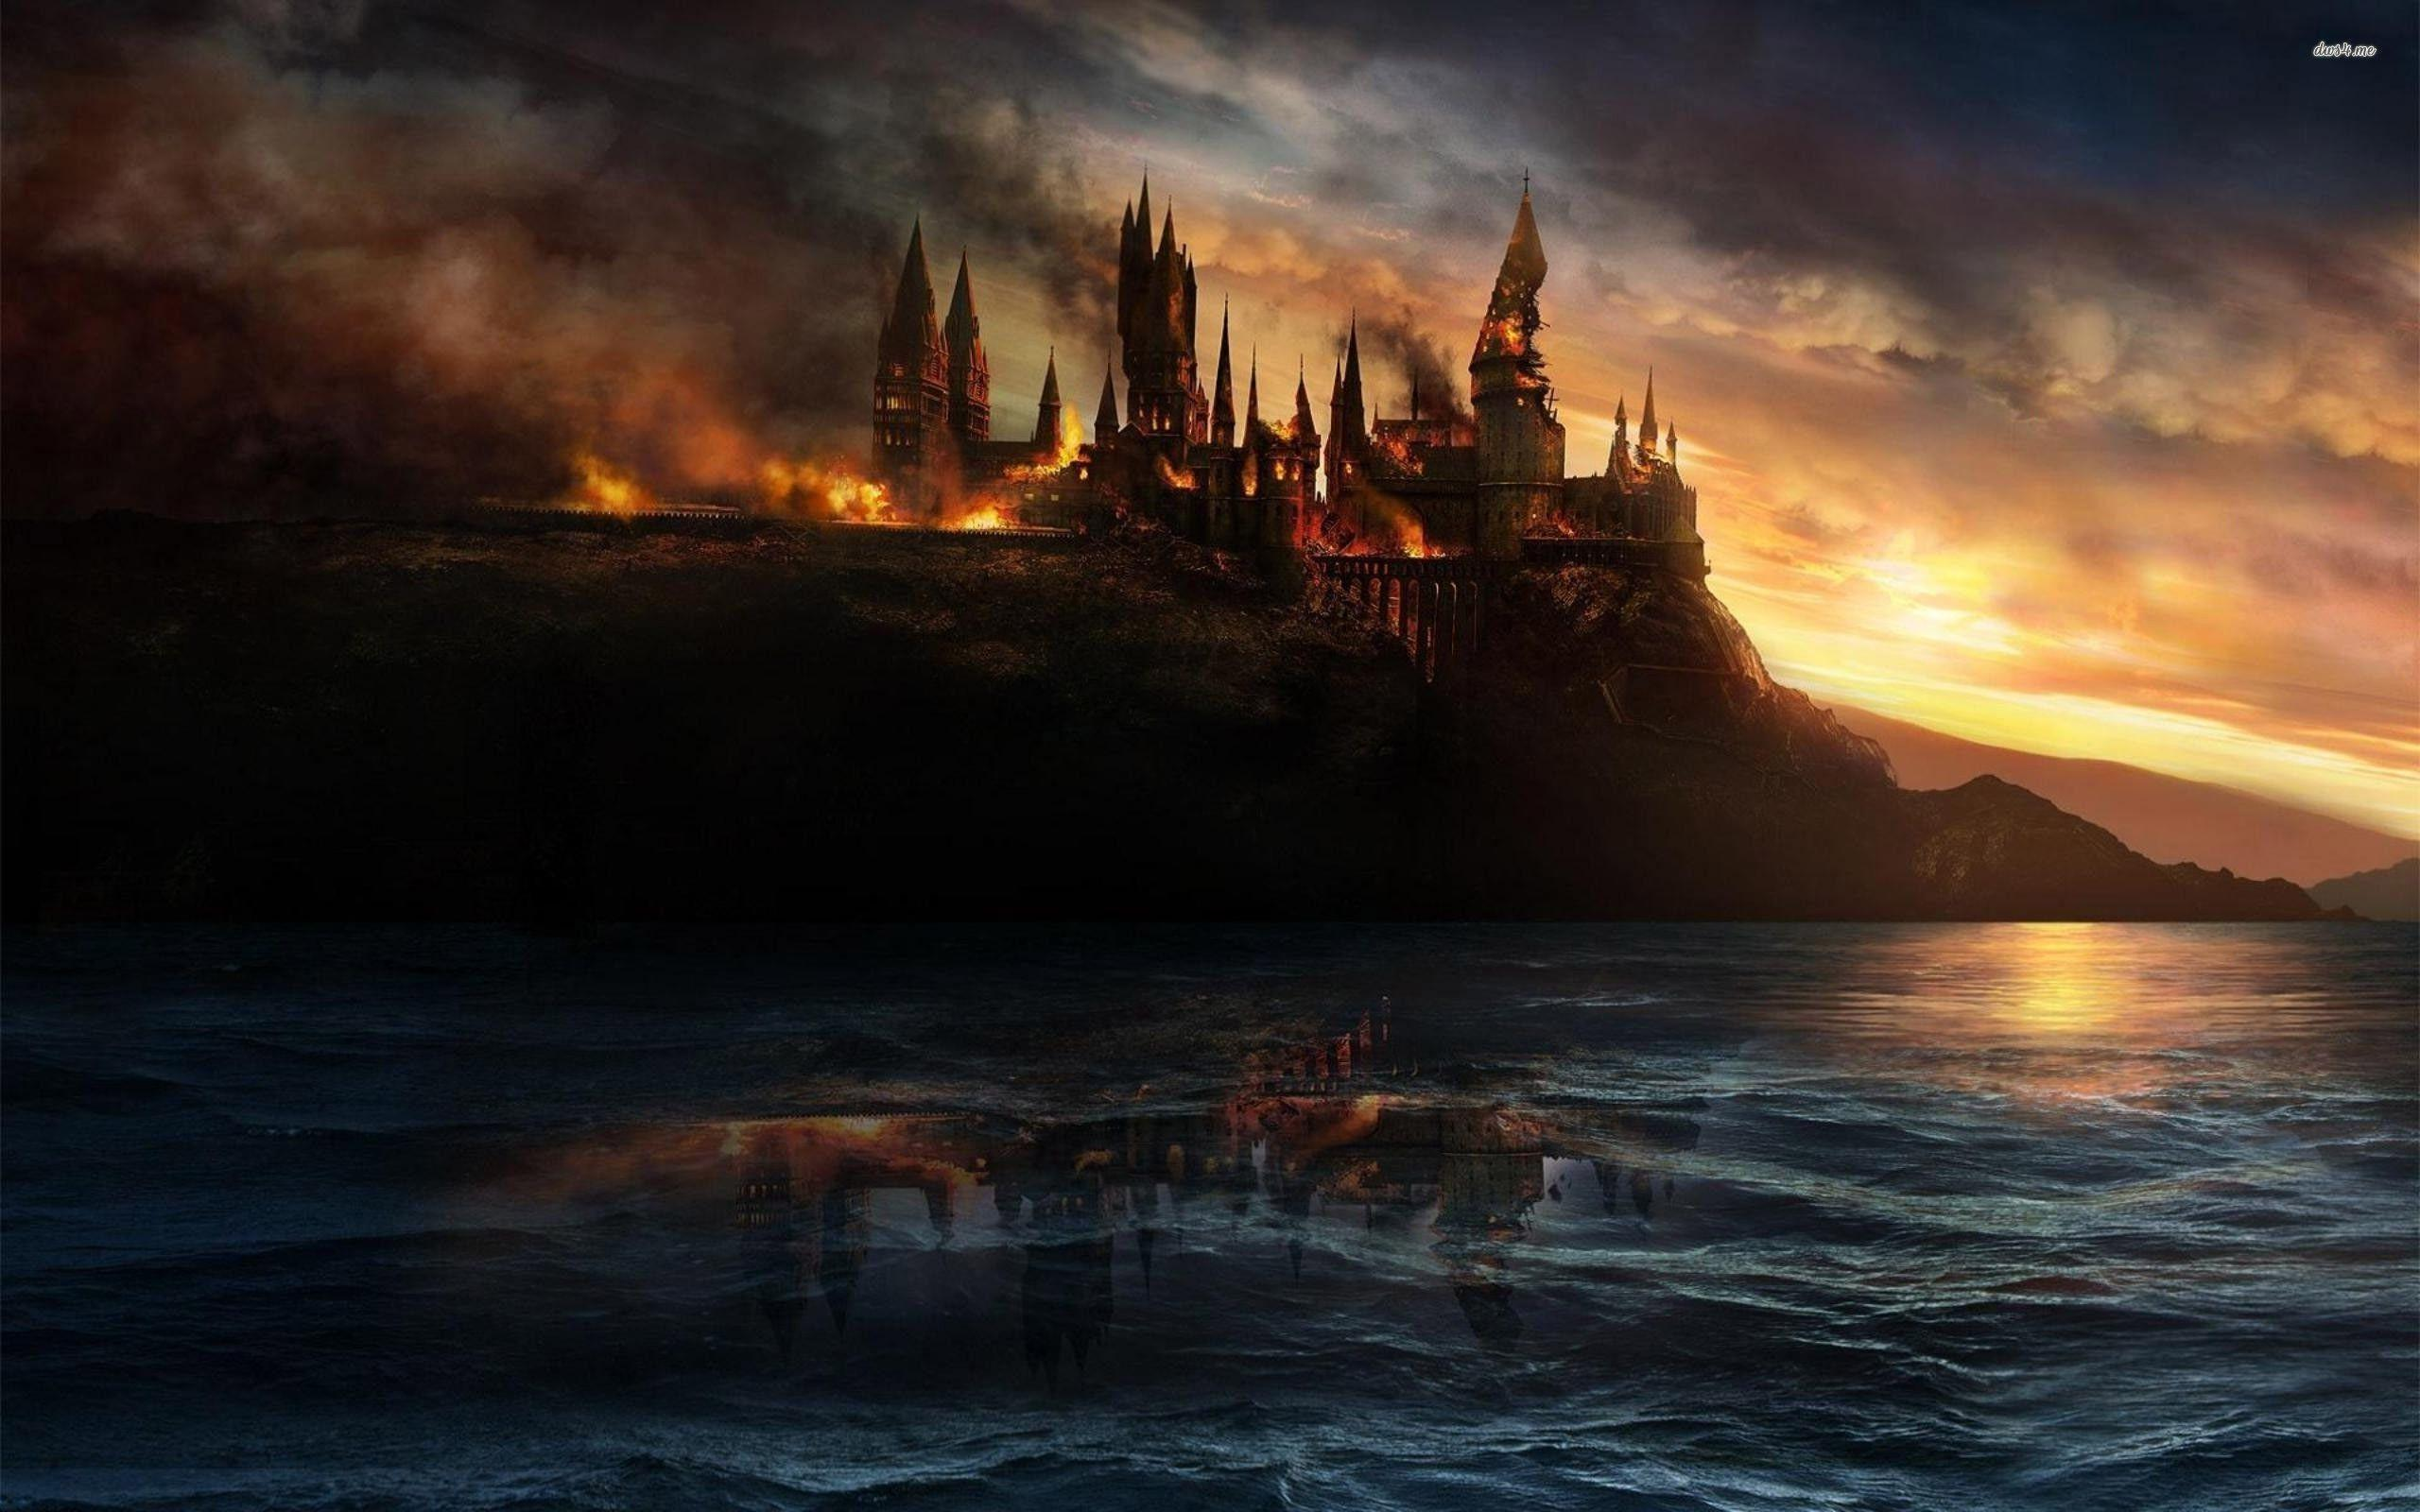 Hd wallpaper harry potter - Harry Potter Deathly Hallows Wallpapers Full Hd Wallpaper Search